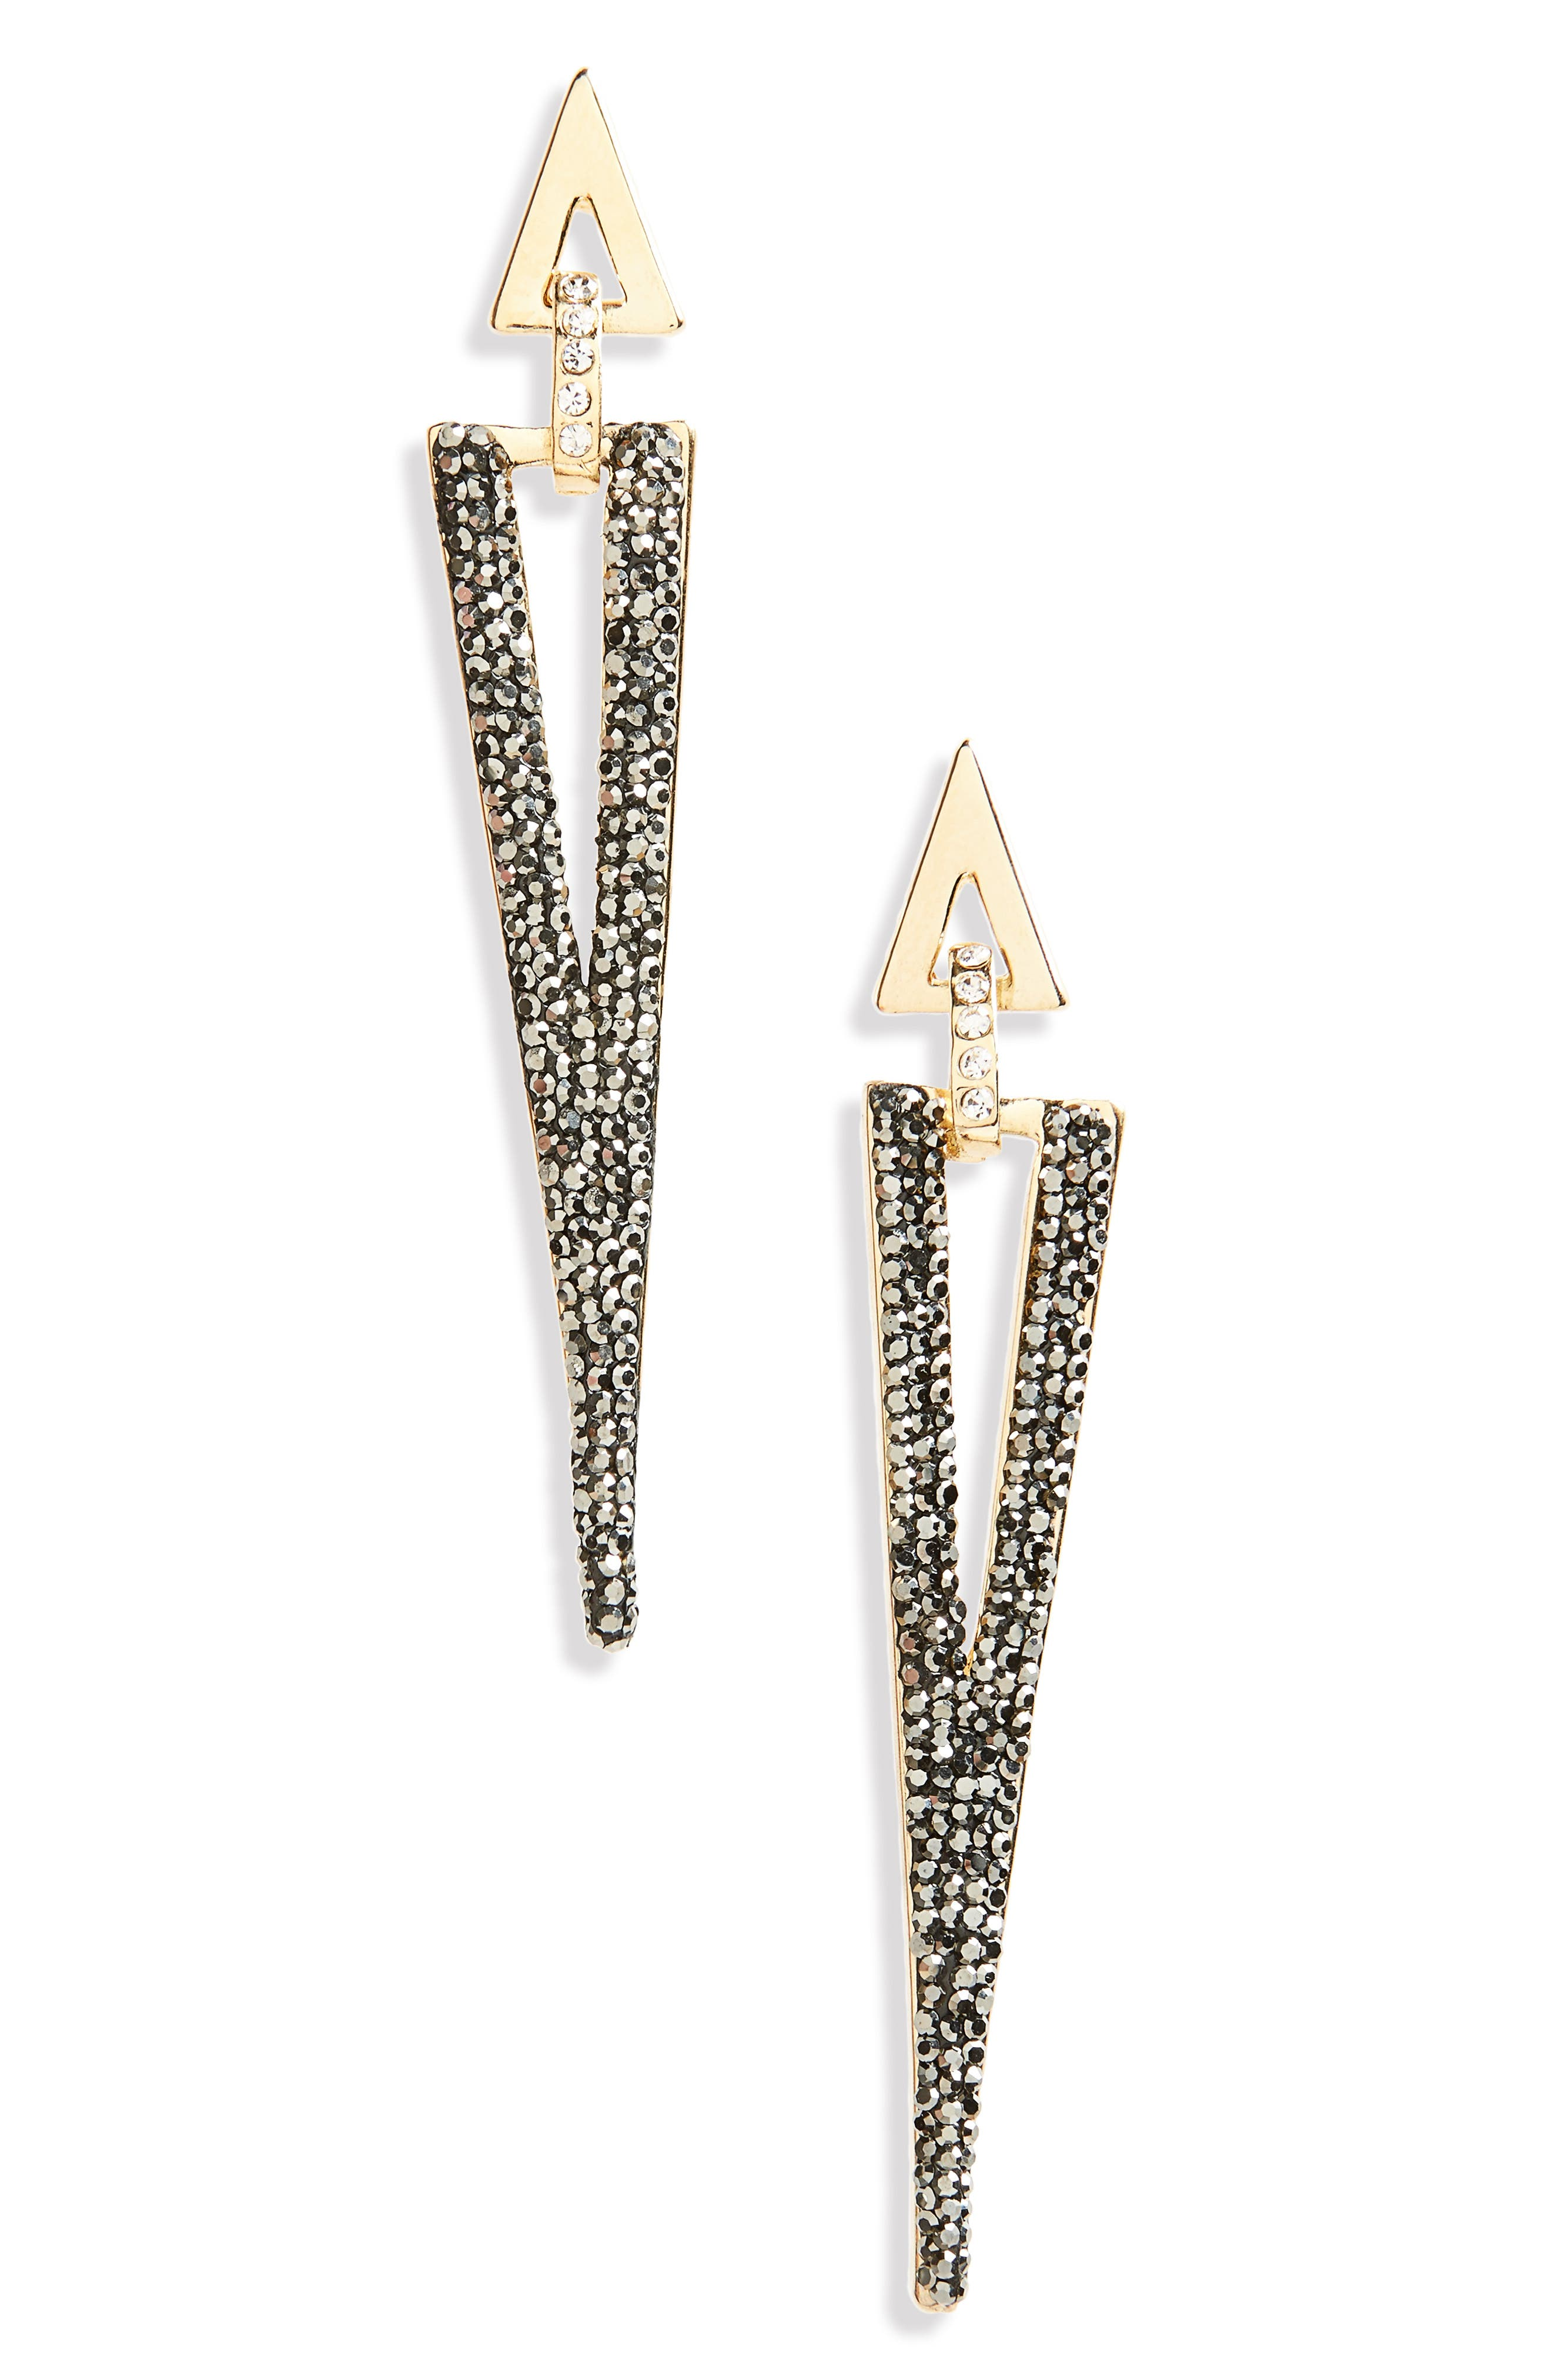 Linear Luxe Triangle Earrings,                             Main thumbnail 1, color,                             020